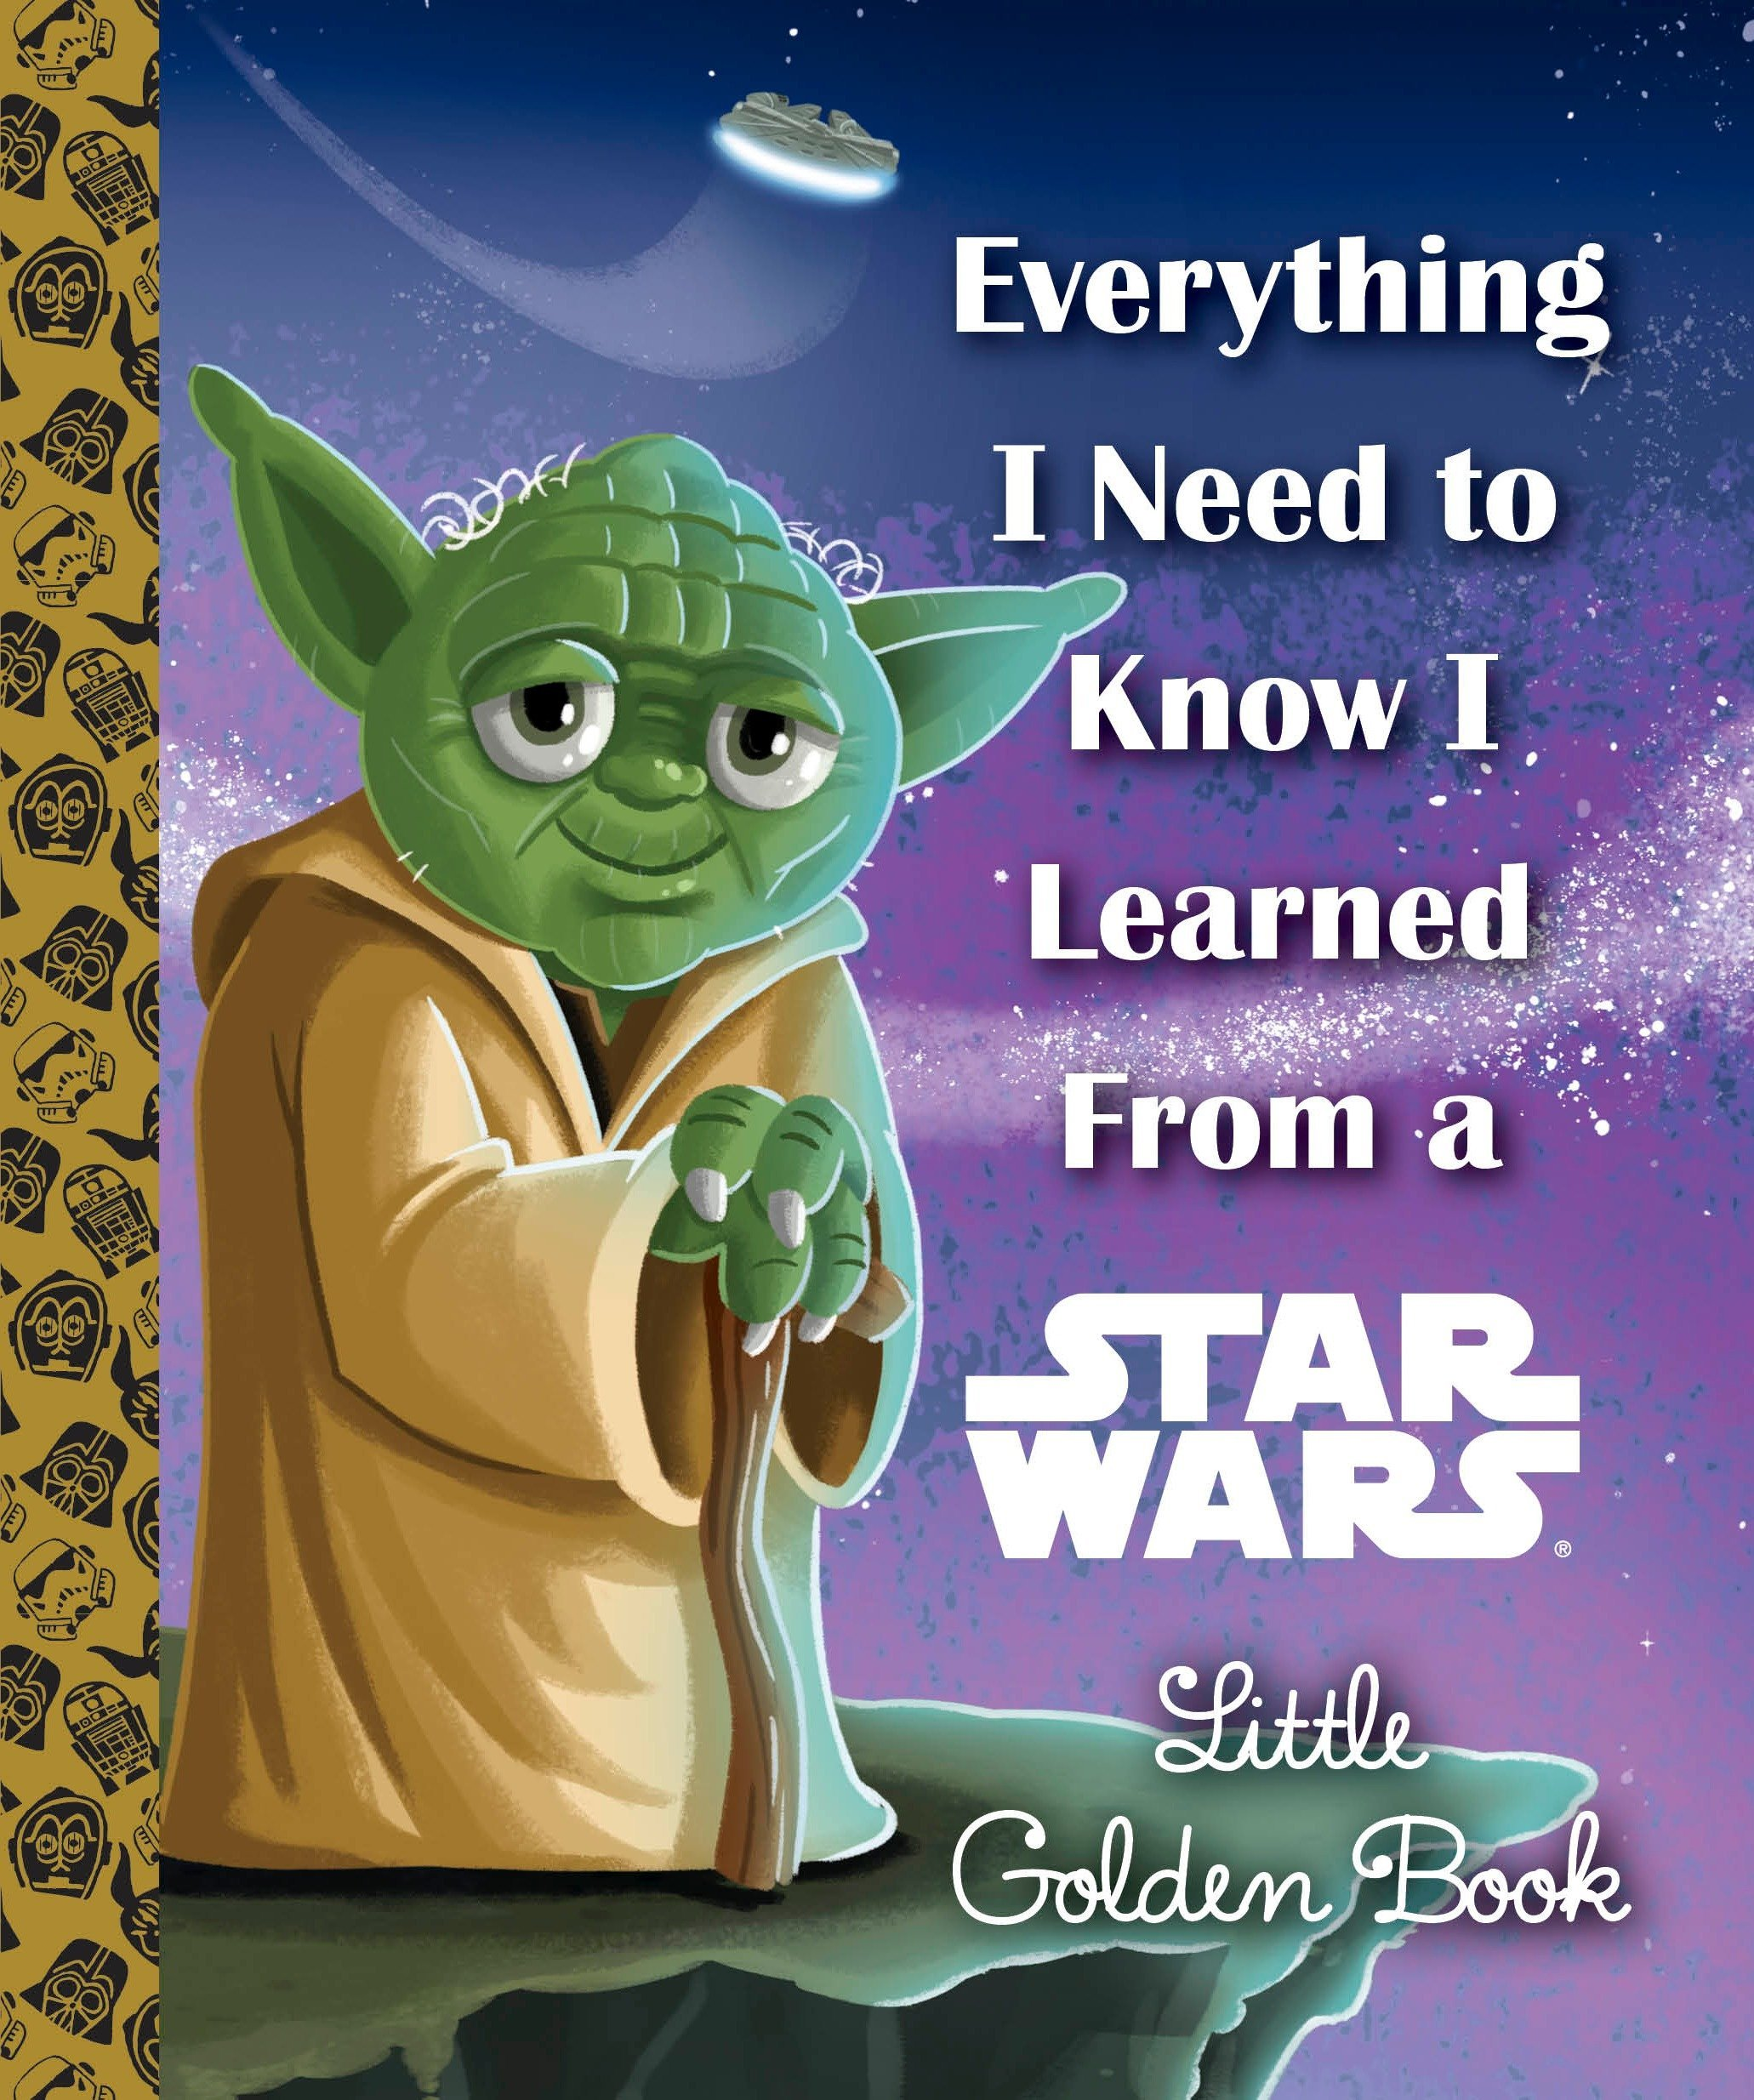 Everything I Need to Know I Learned From a Star Wars Little Golden Book (Star Wars) pdf epub